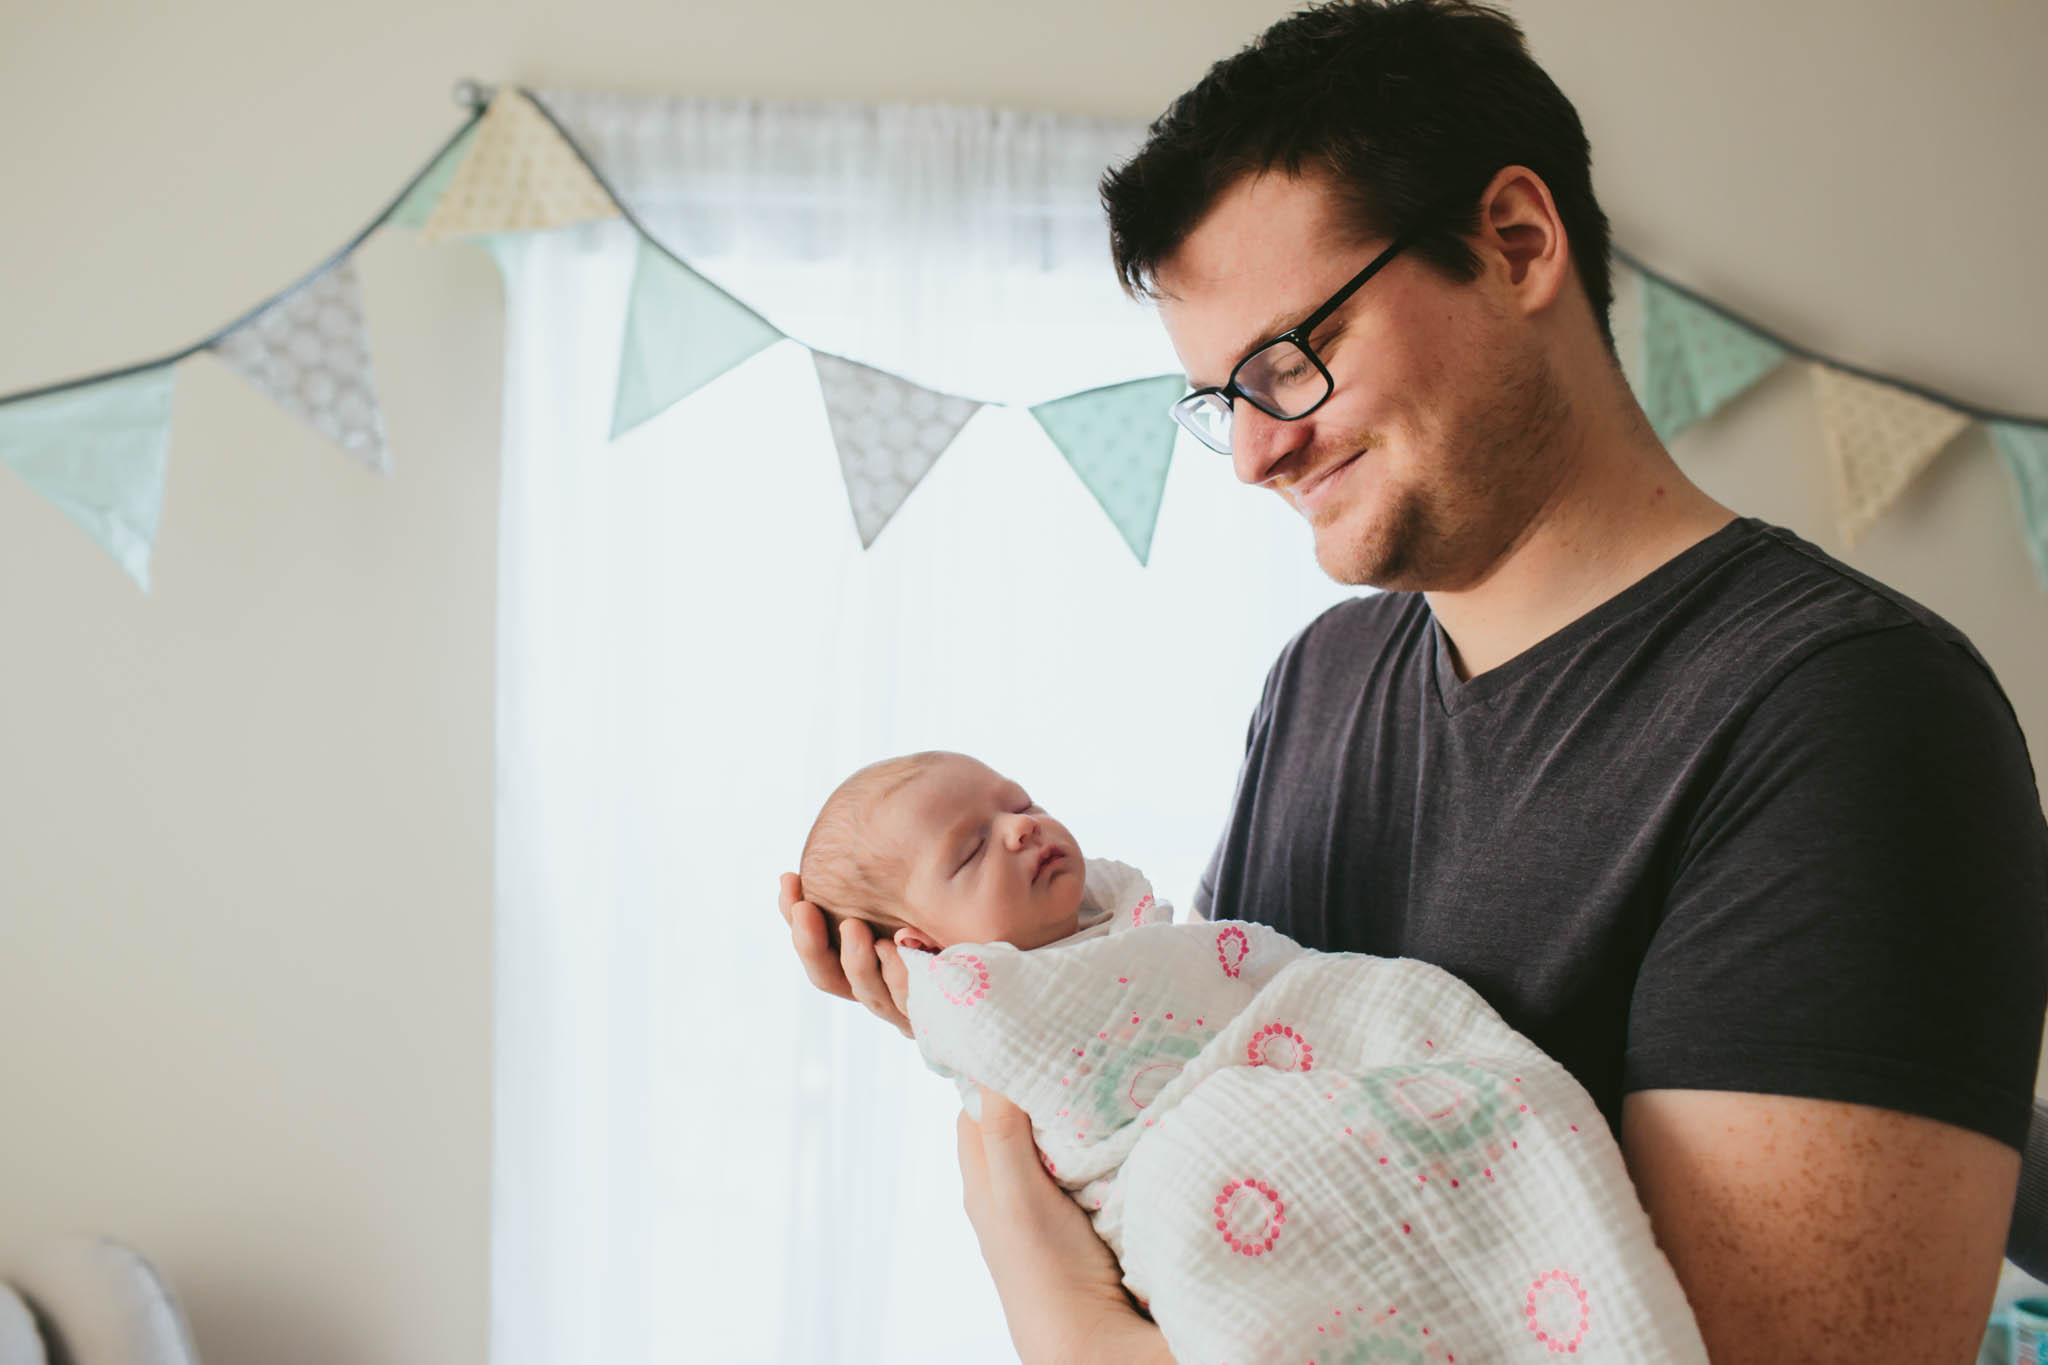 Jillian VanZytveld Photography - Grand Rapids Lifestyle Newborn Photography - 08.jpg